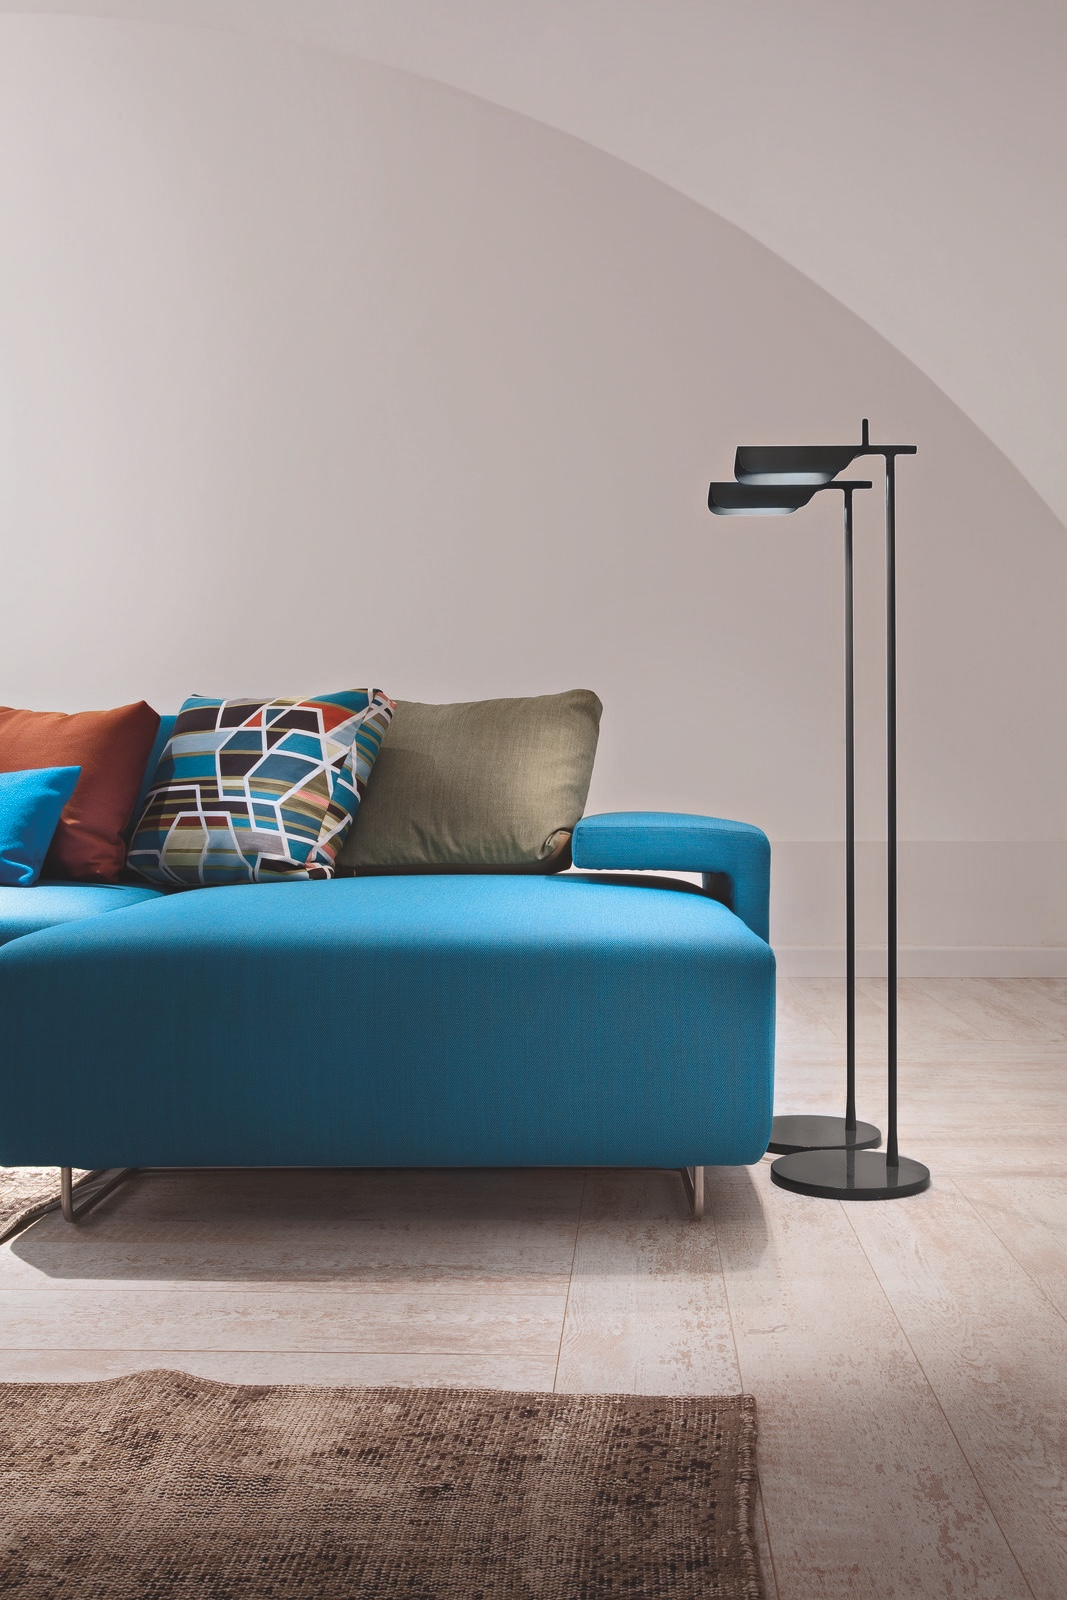 Tab floor lamp I